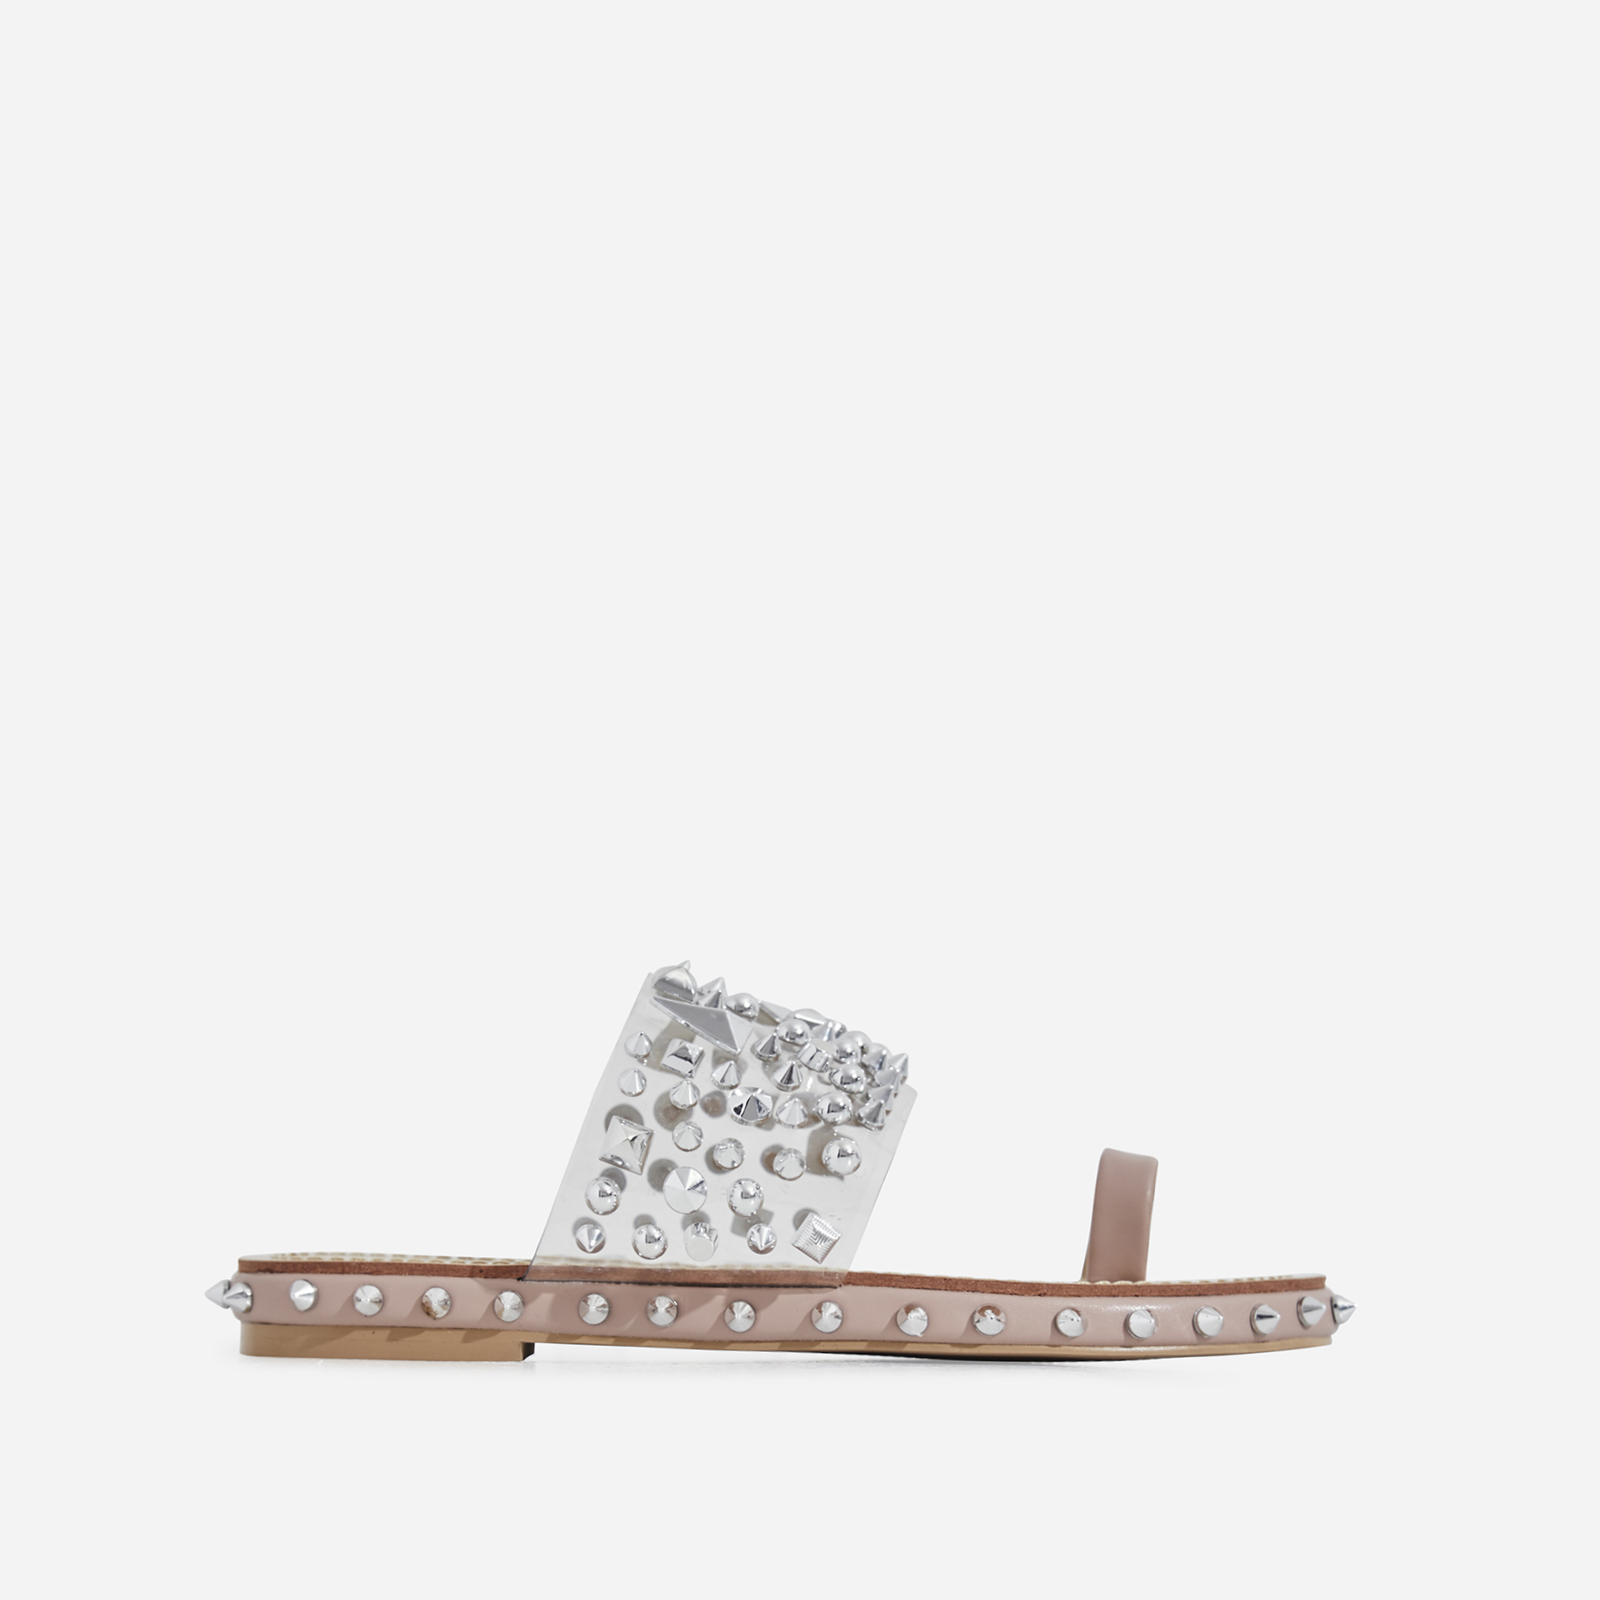 Pedro Studded Detail Toe Strap Perspex Slider In Nude Faux Leather